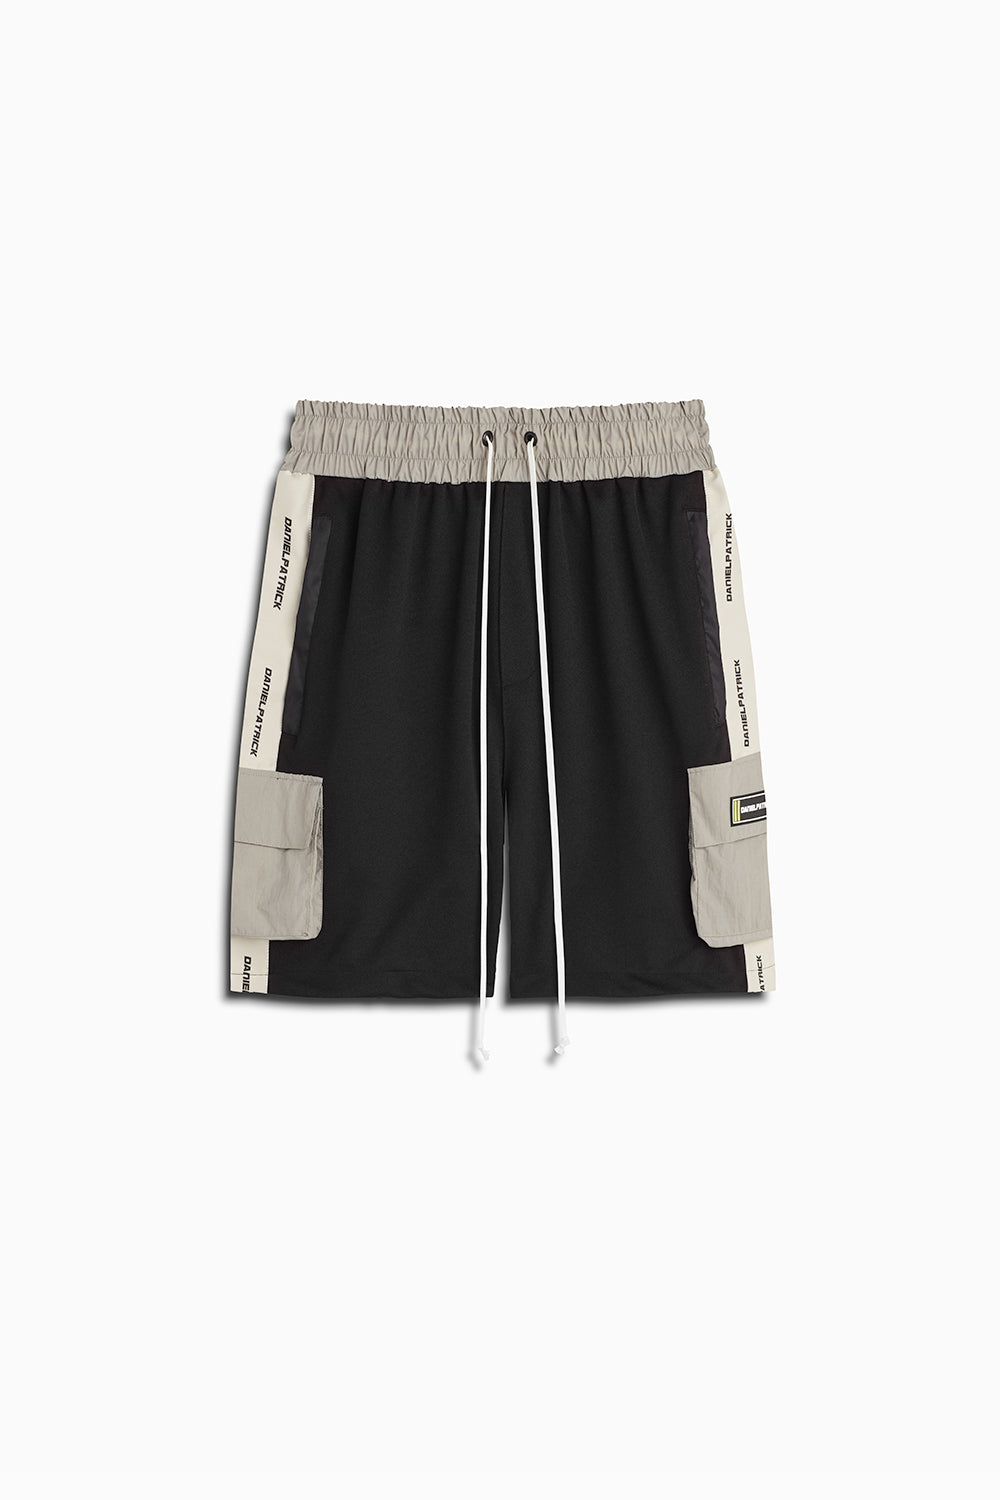 cargo gym short in black/ivory/smog grey by daniel patrick